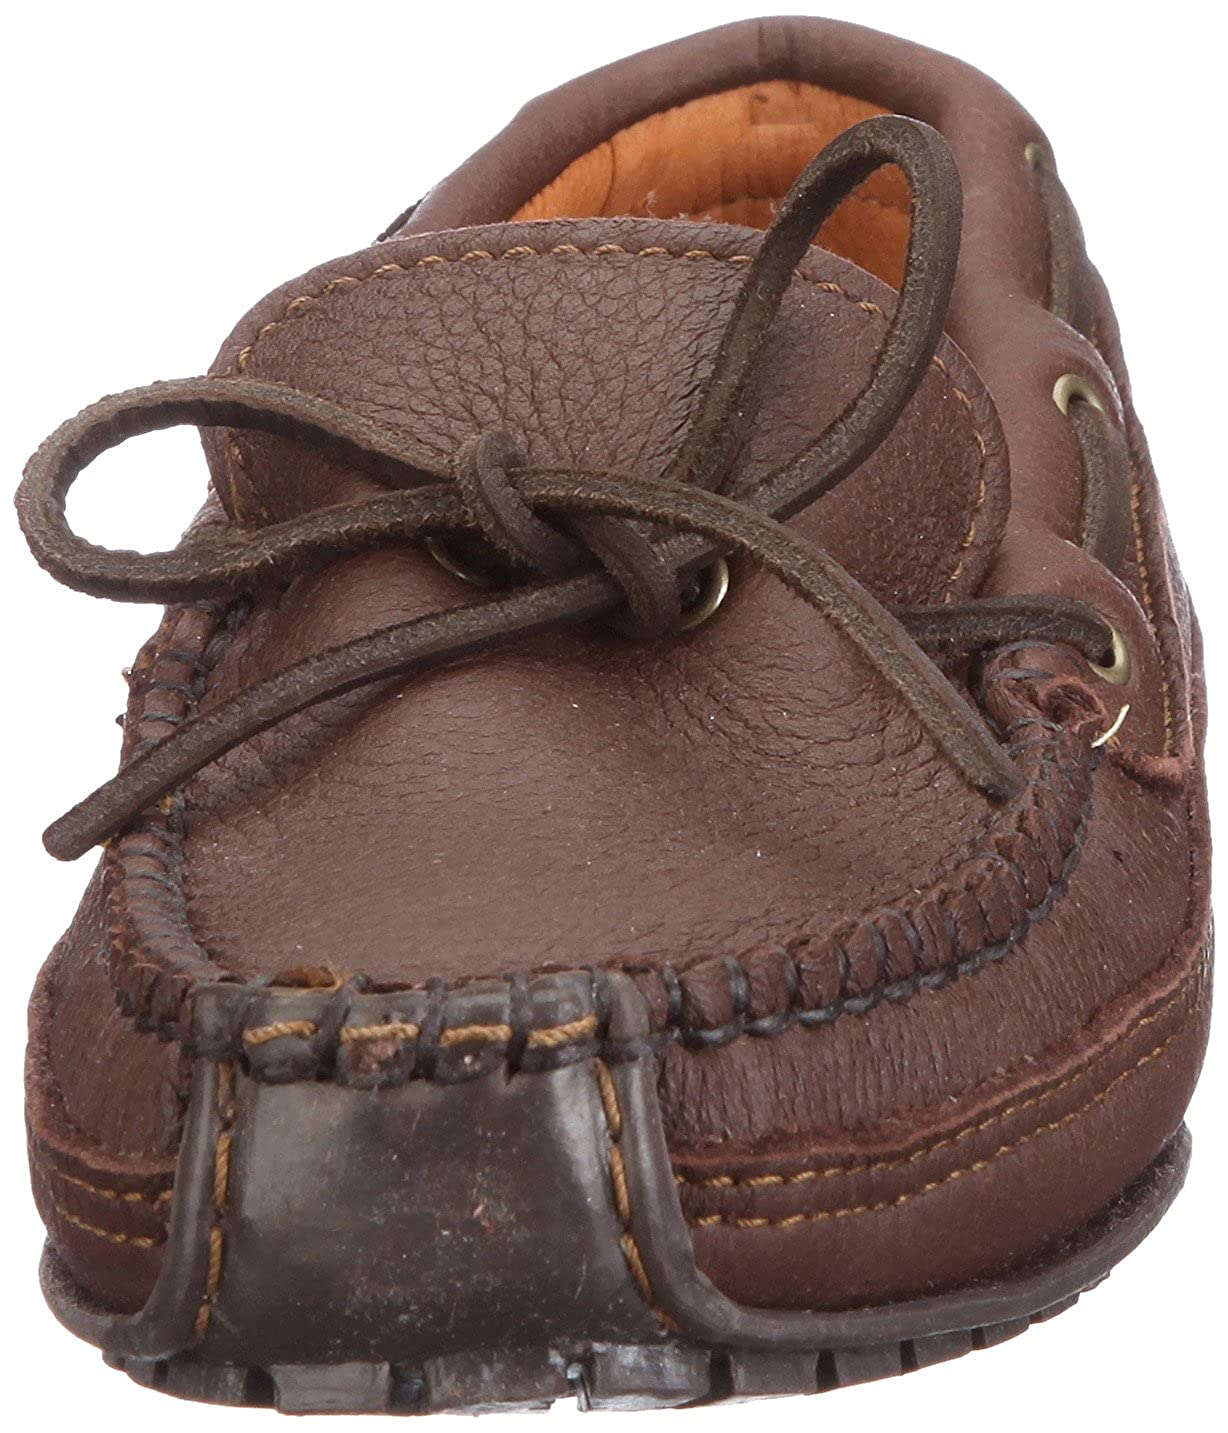 Minnetonka Moosehide Weekend Moc - Mocasines Hombre, Marrón (Chocolate), 40.5: Amazon.es: Zapatos y complementos